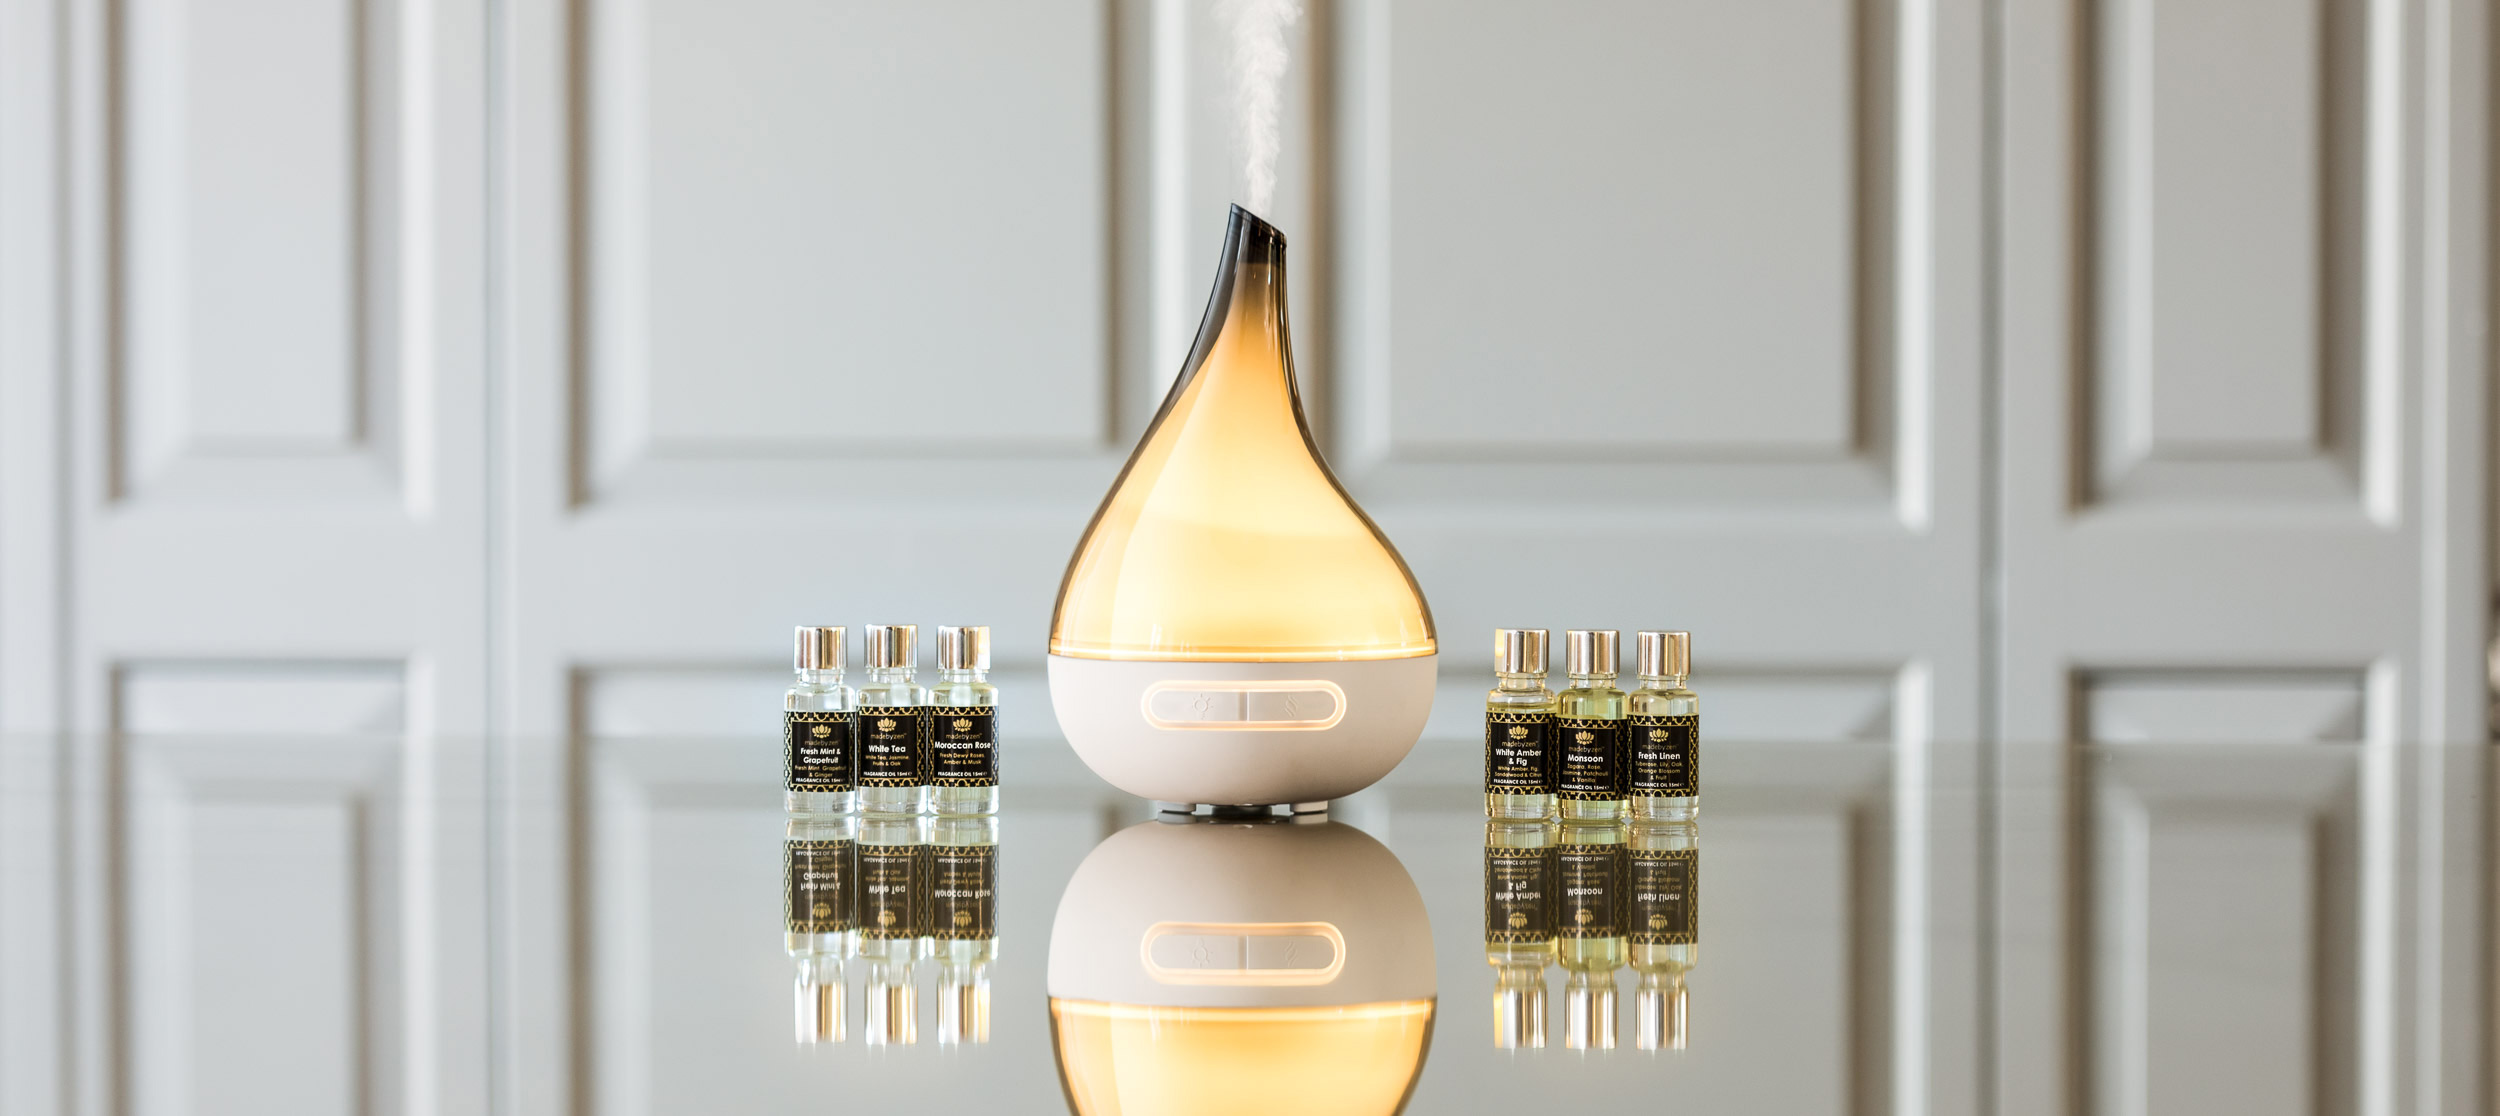 Product Photography of an oil diffuser and oils on a reflective surface.